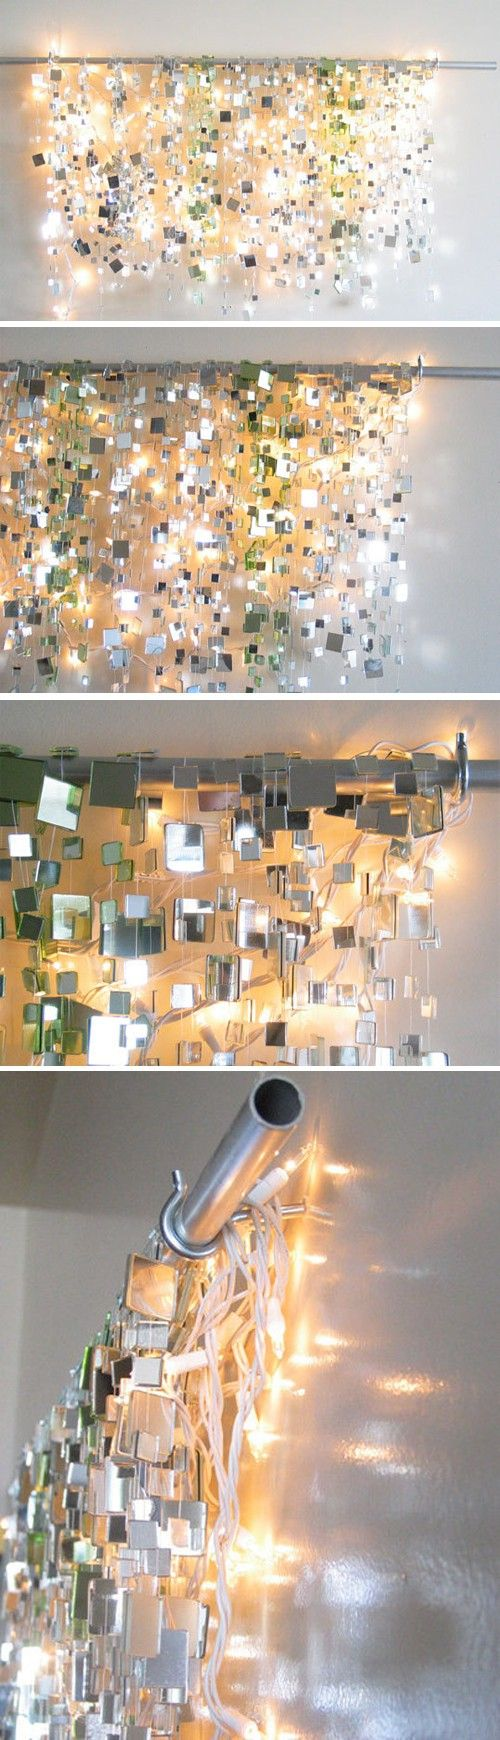 Small mirror tiles glued to fishing line with lights behind-  I want to hang it in a nursery when I need a nursery!